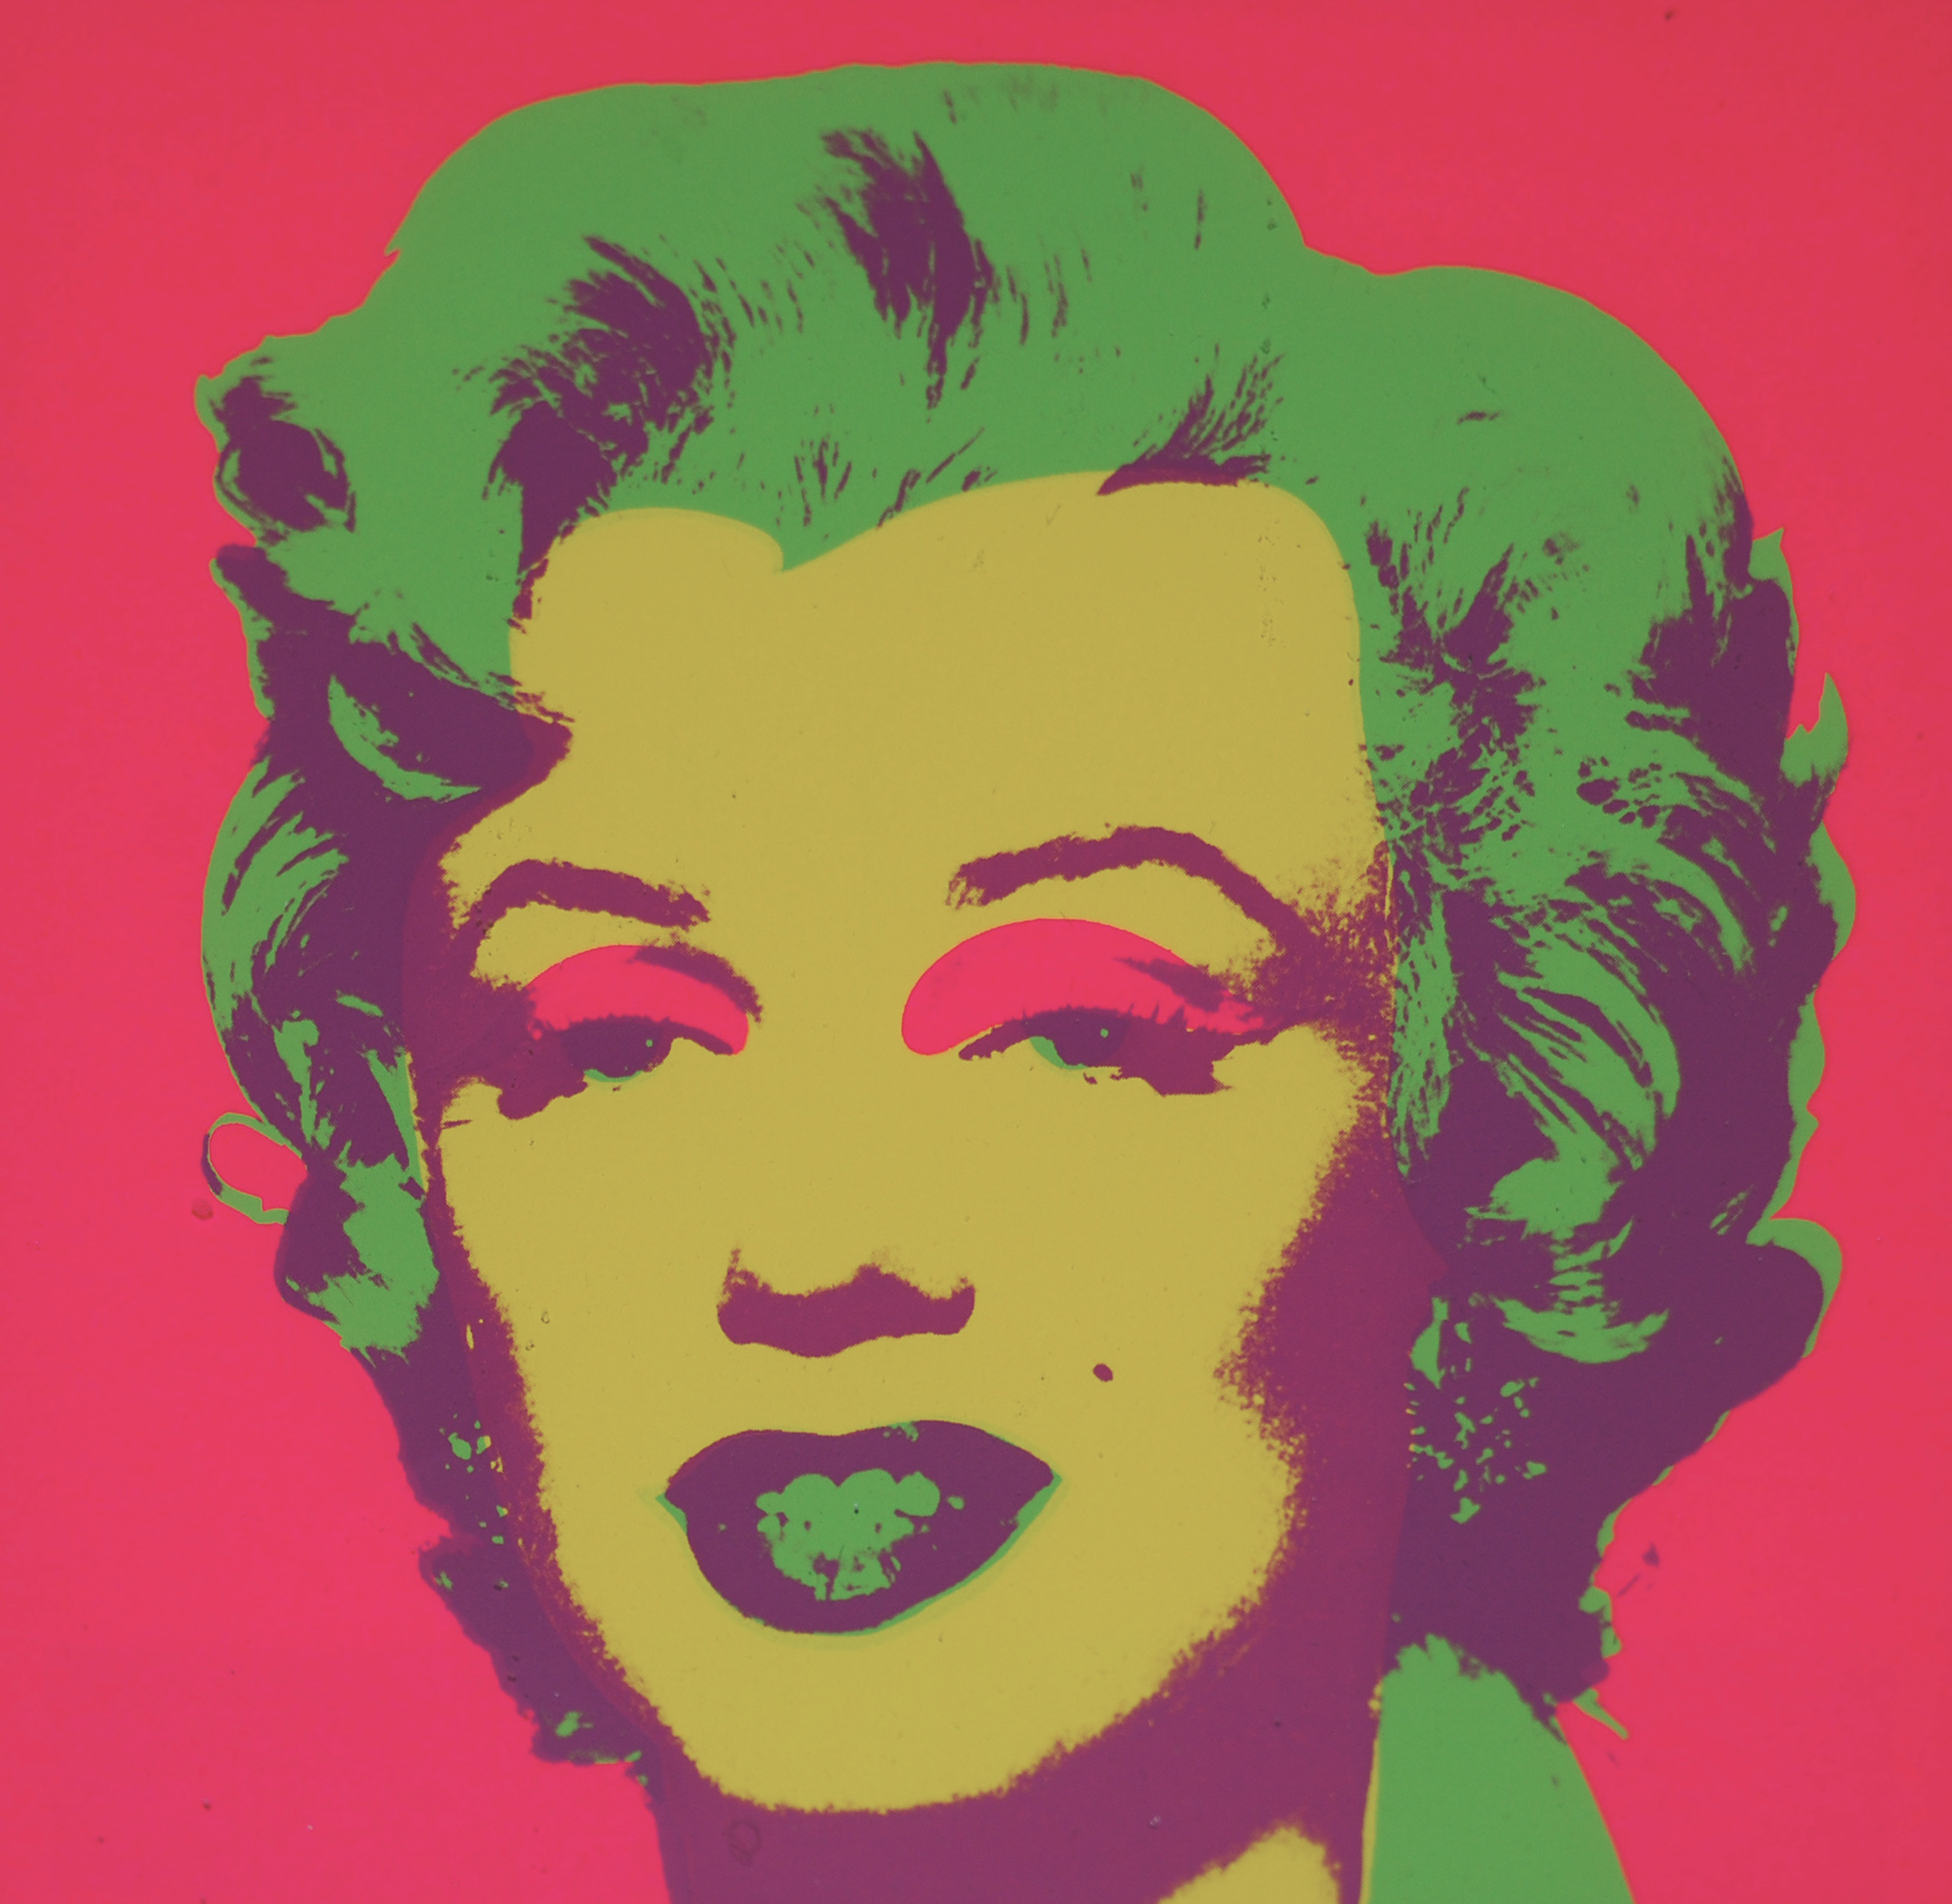 andy warhol pop art movement essay Andy warhol is an icon of the pop art movement of the 1960s and has created comic strips, images of celebrities and other works.